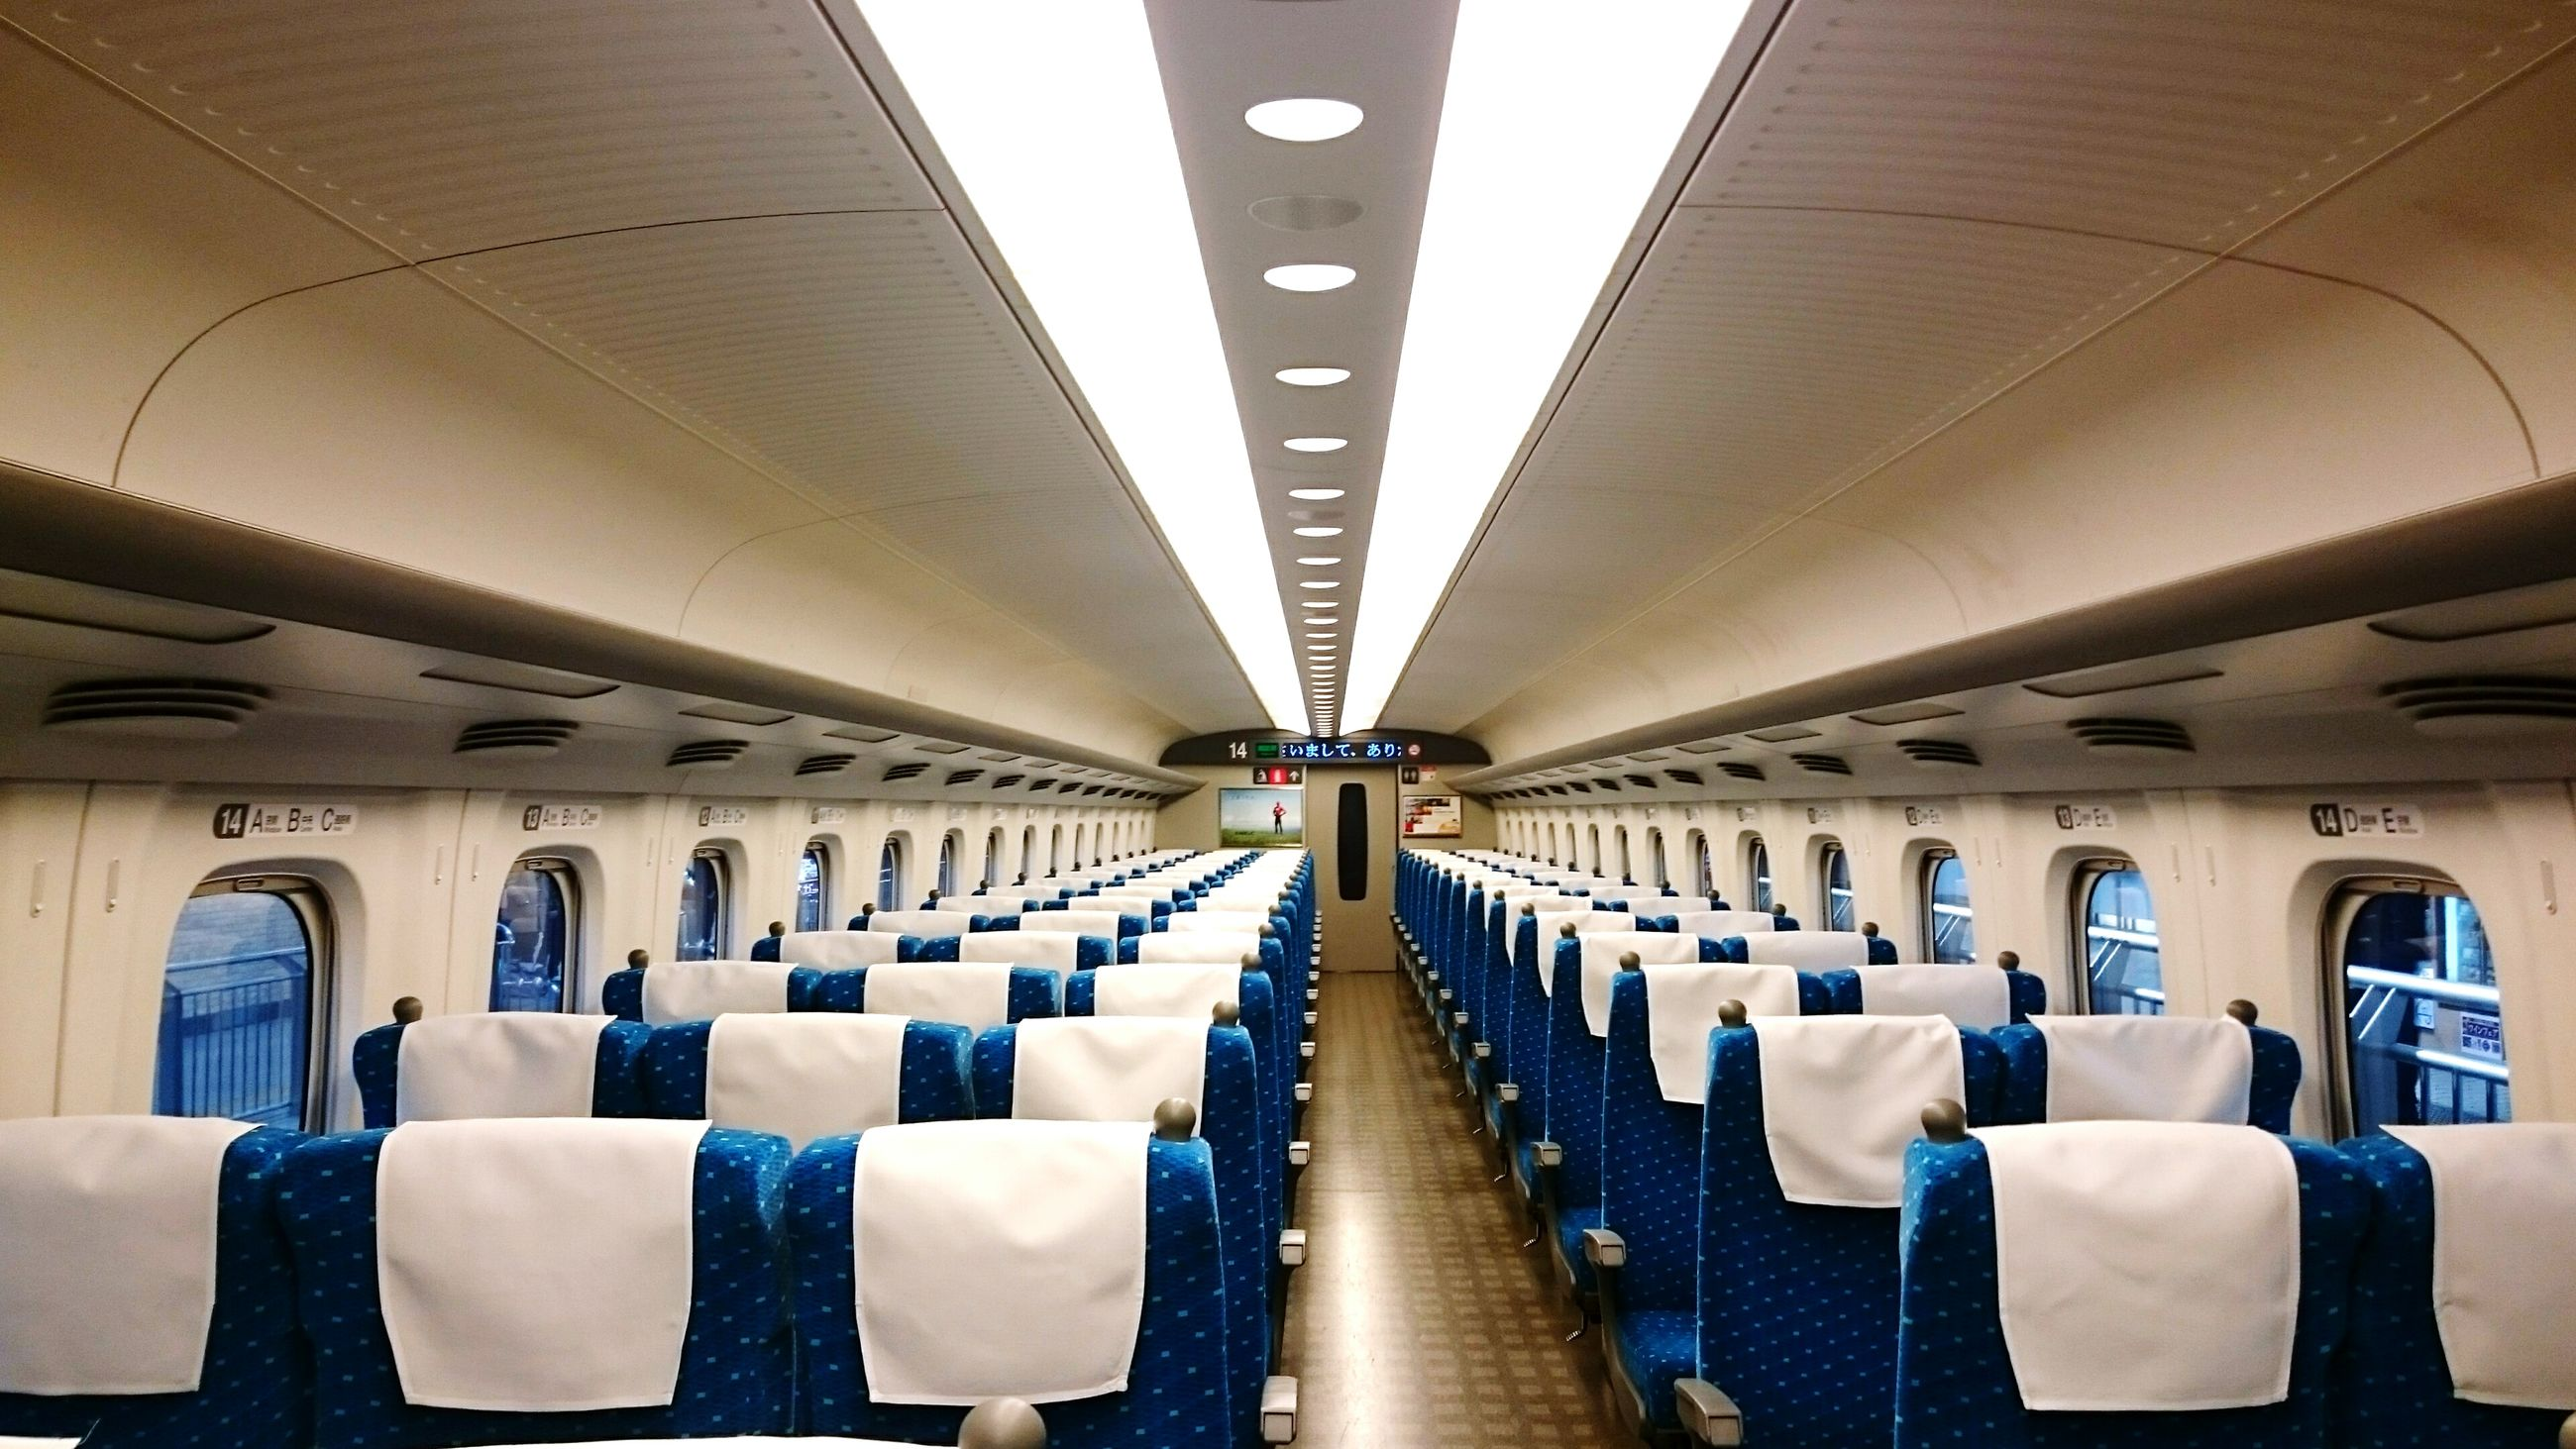 indoors, transportation, in a row, public transportation, mode of transport, vehicle interior, vehicle seat, travel, train - vehicle, ceiling, empty, railroad station, seat, rail transportation, interior, passenger train, journey, architectural column, modern, airport